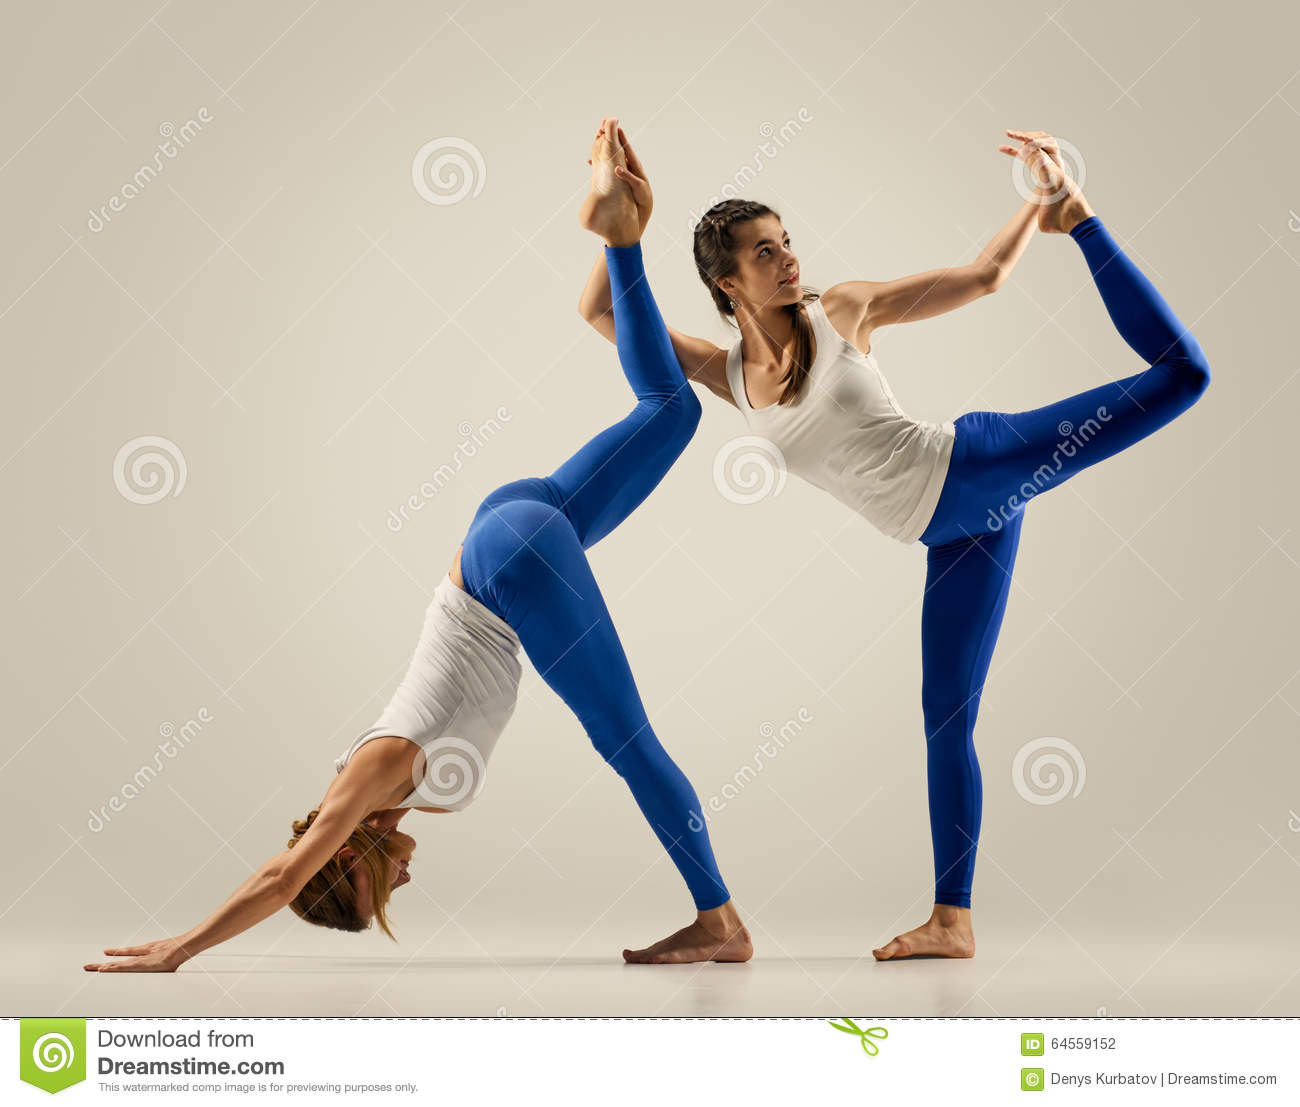 Classes moreover Stock Photo Yoga Pair Stretching Back Seated Sporty Yogi Sisters Doing Fitness Training Studio Shot Couple Image64061250 as well Day Spa Floor Plans besides Rental besides Stock Photo Pair Yoga Couple Women Duo Pose Sporty Yogi Sisters Doing Fitness Training Studio Shot Image64559152. on yoga studio floor plan